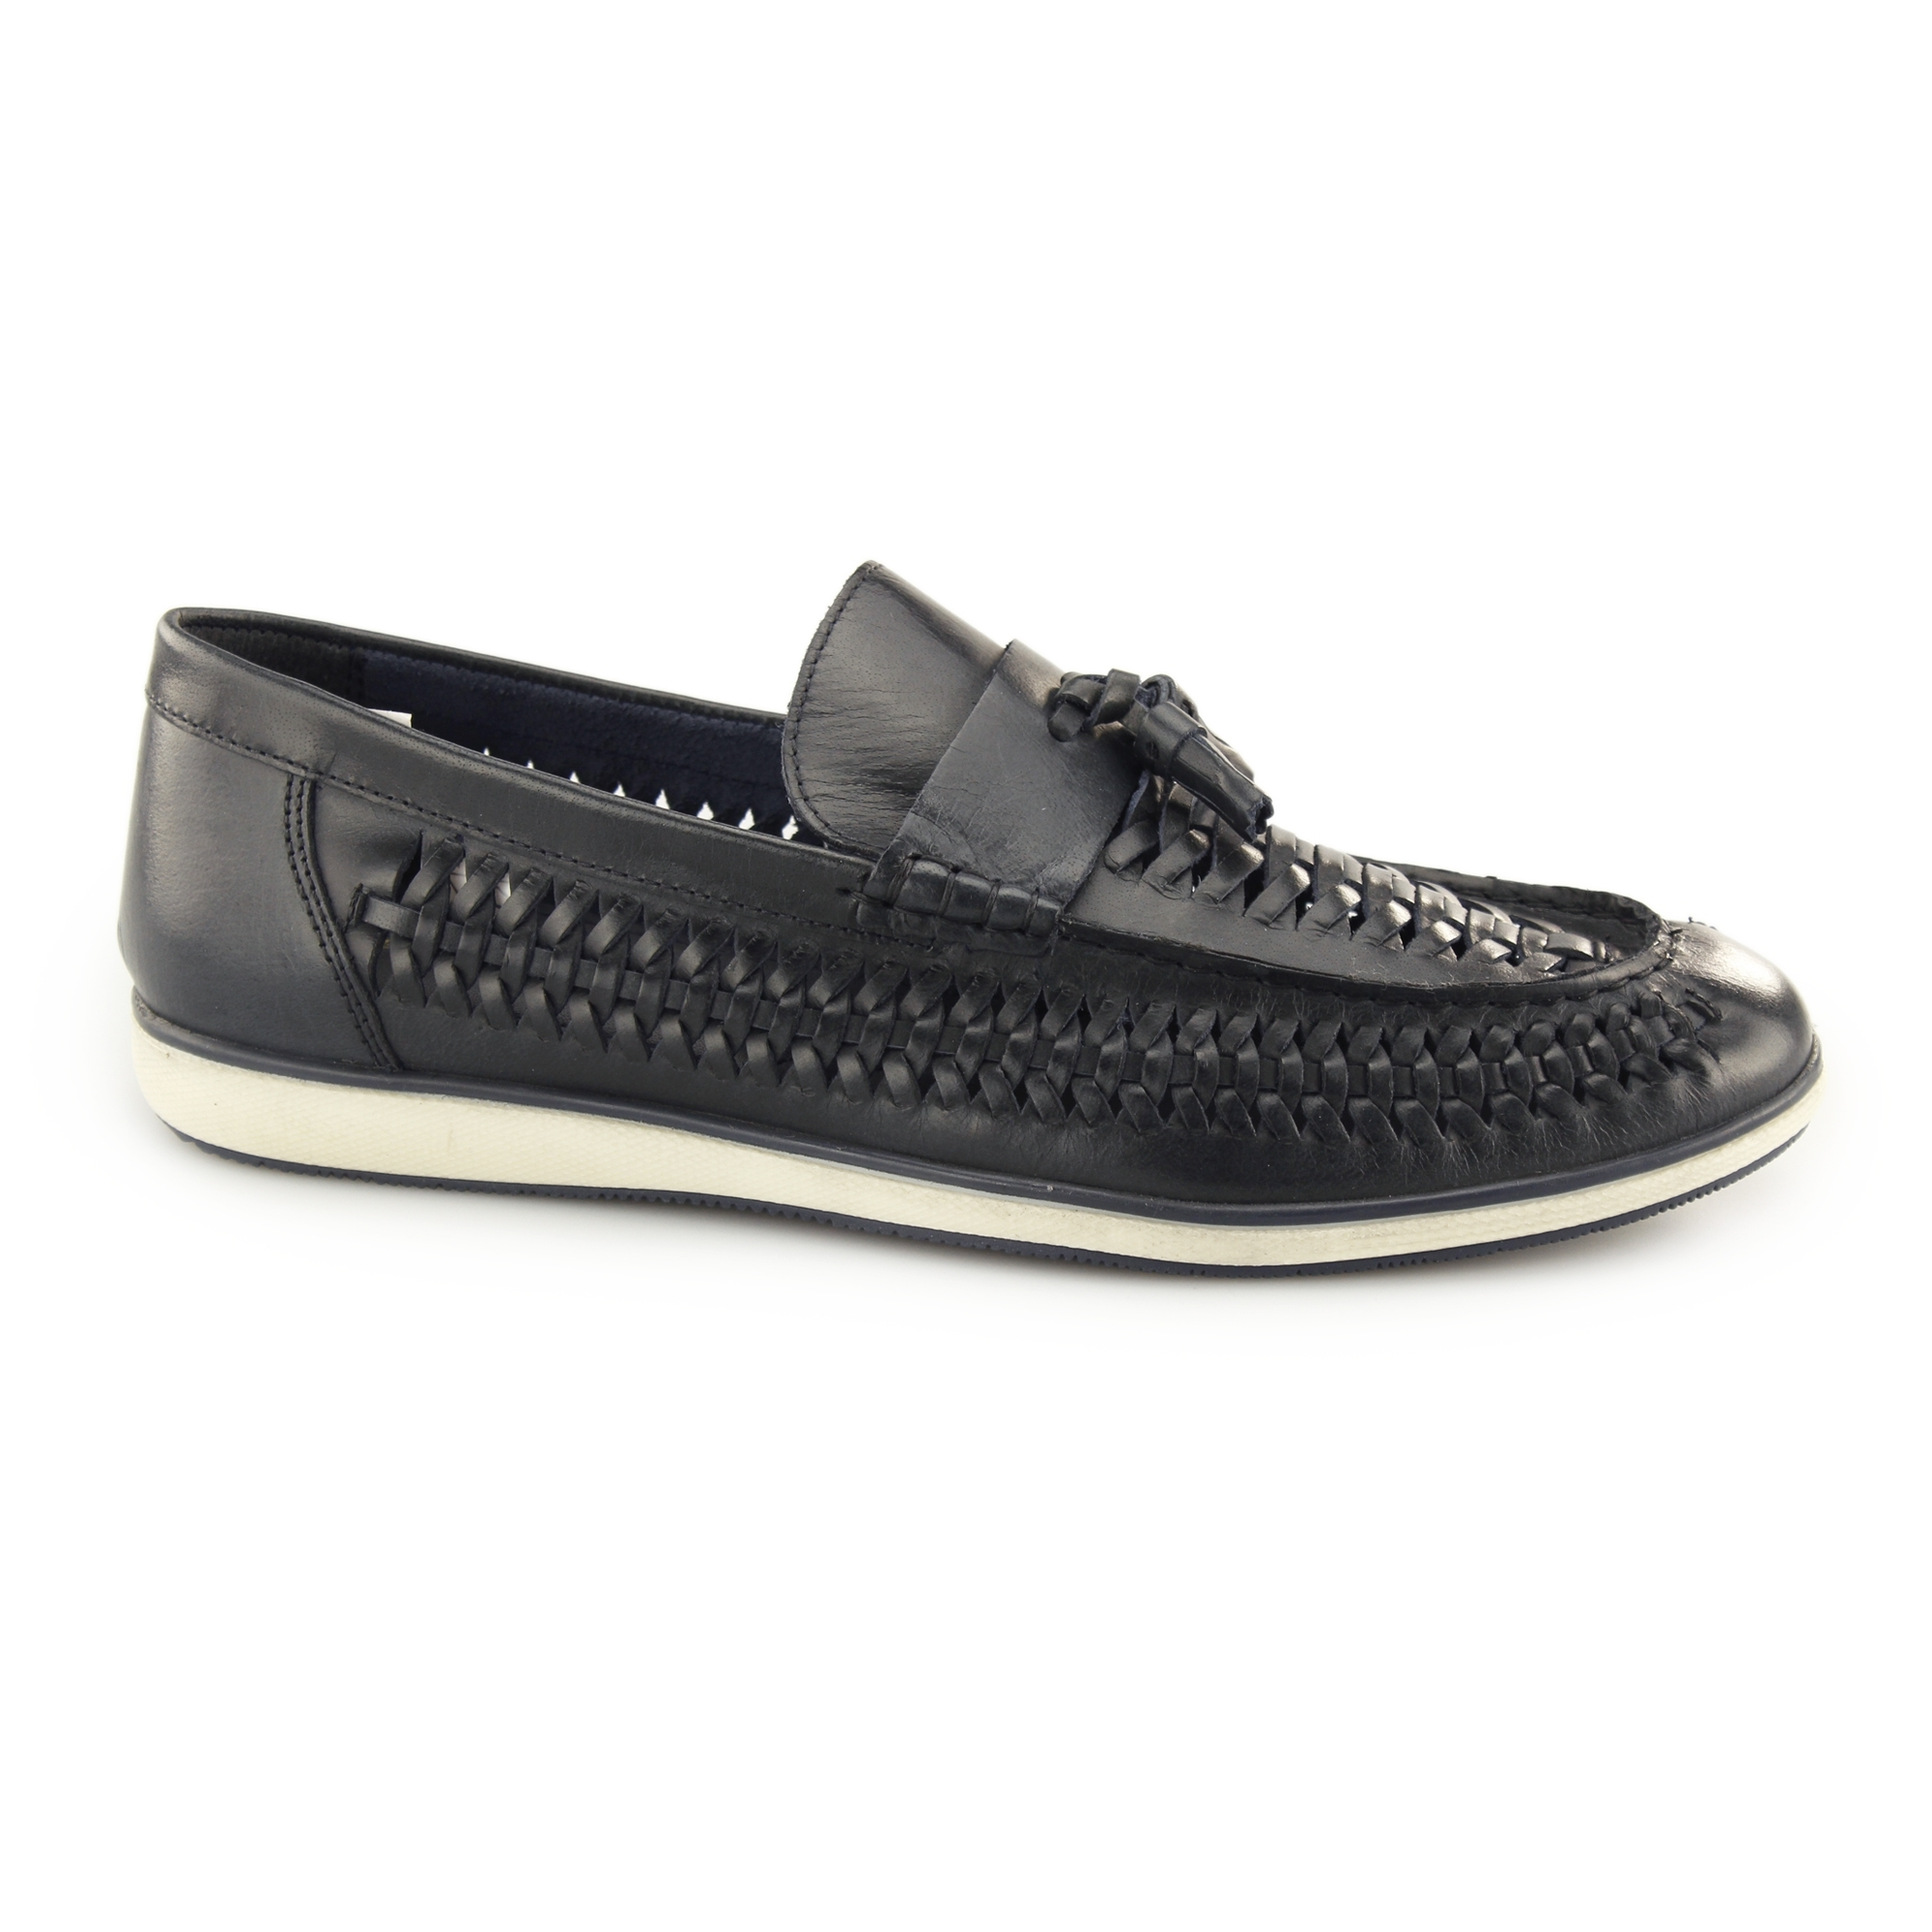 5f0e9663b3 Red Tape NOTLEY Mens Leather Woven Tassel Loafers Blue | Shuperb